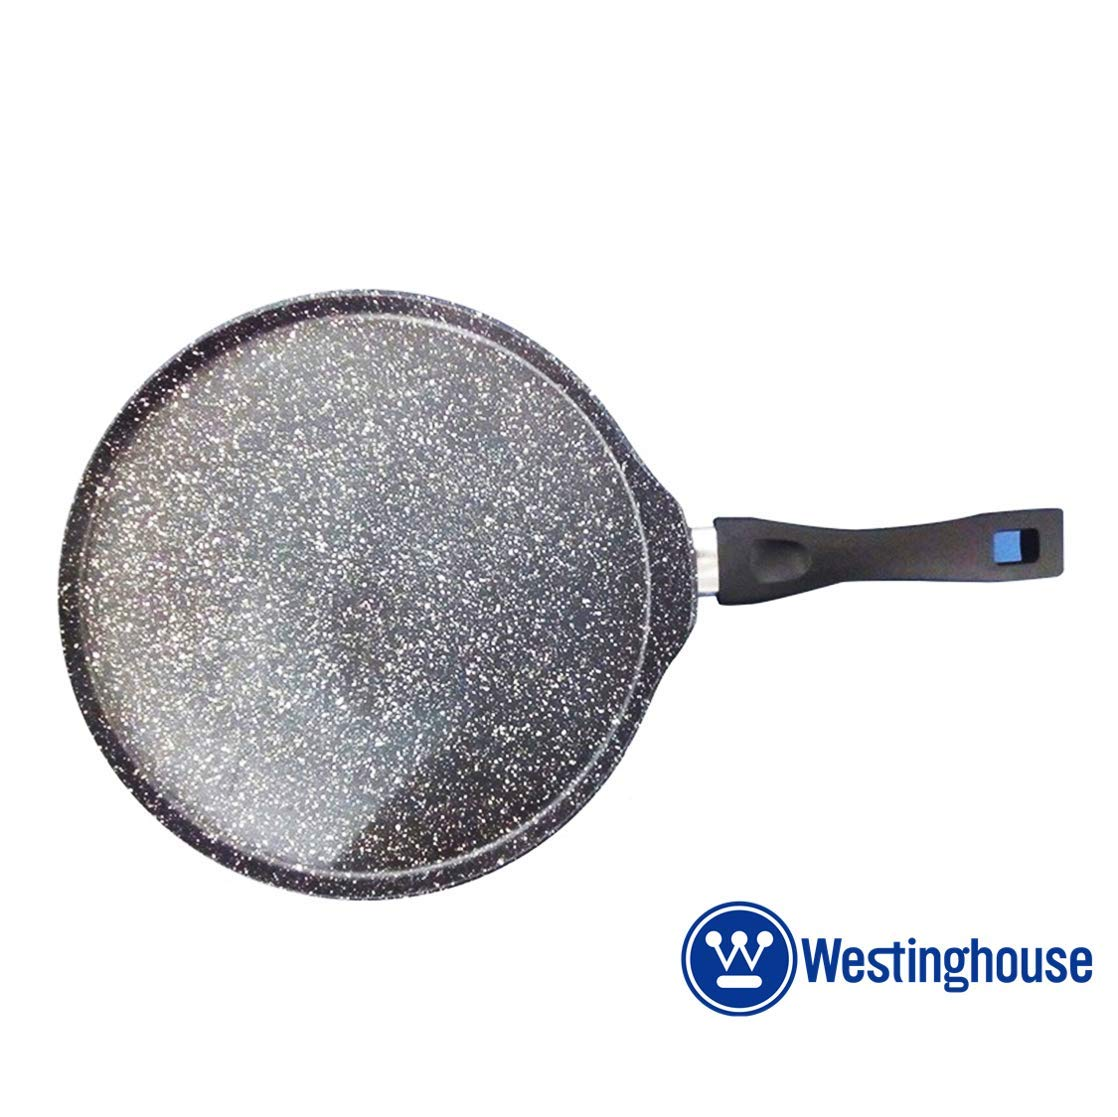 11-inch Westinghouse Marble Coated Non-Stick Crep/é Pan